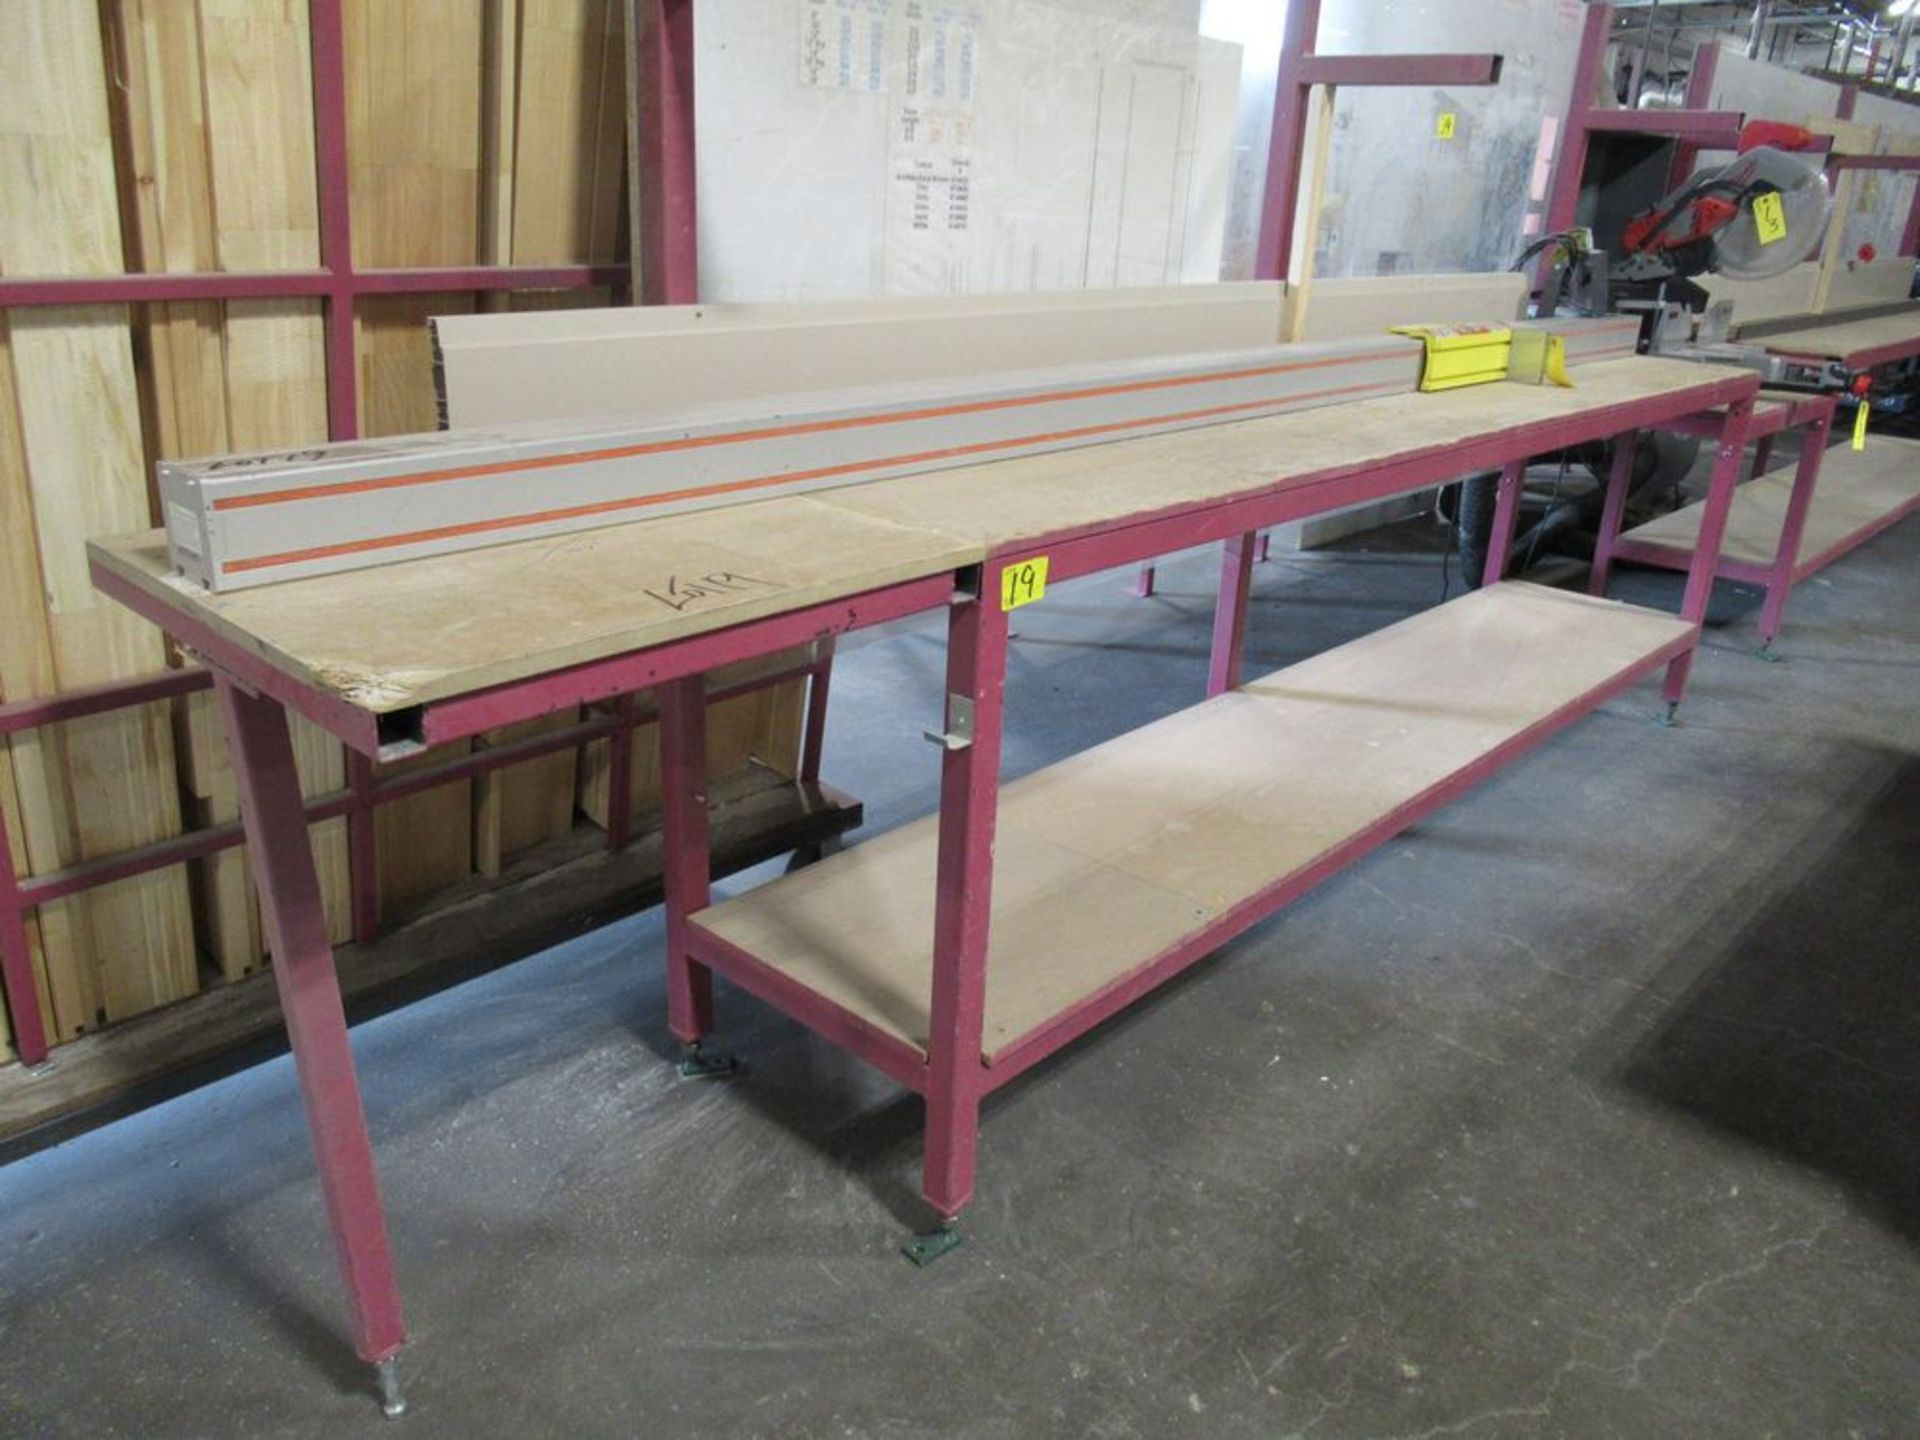 """TIGER STOP 12' MATERIAL MEASURING SYSTEM W/ 22"""" X 12' TABLE - Image 2 of 4"""